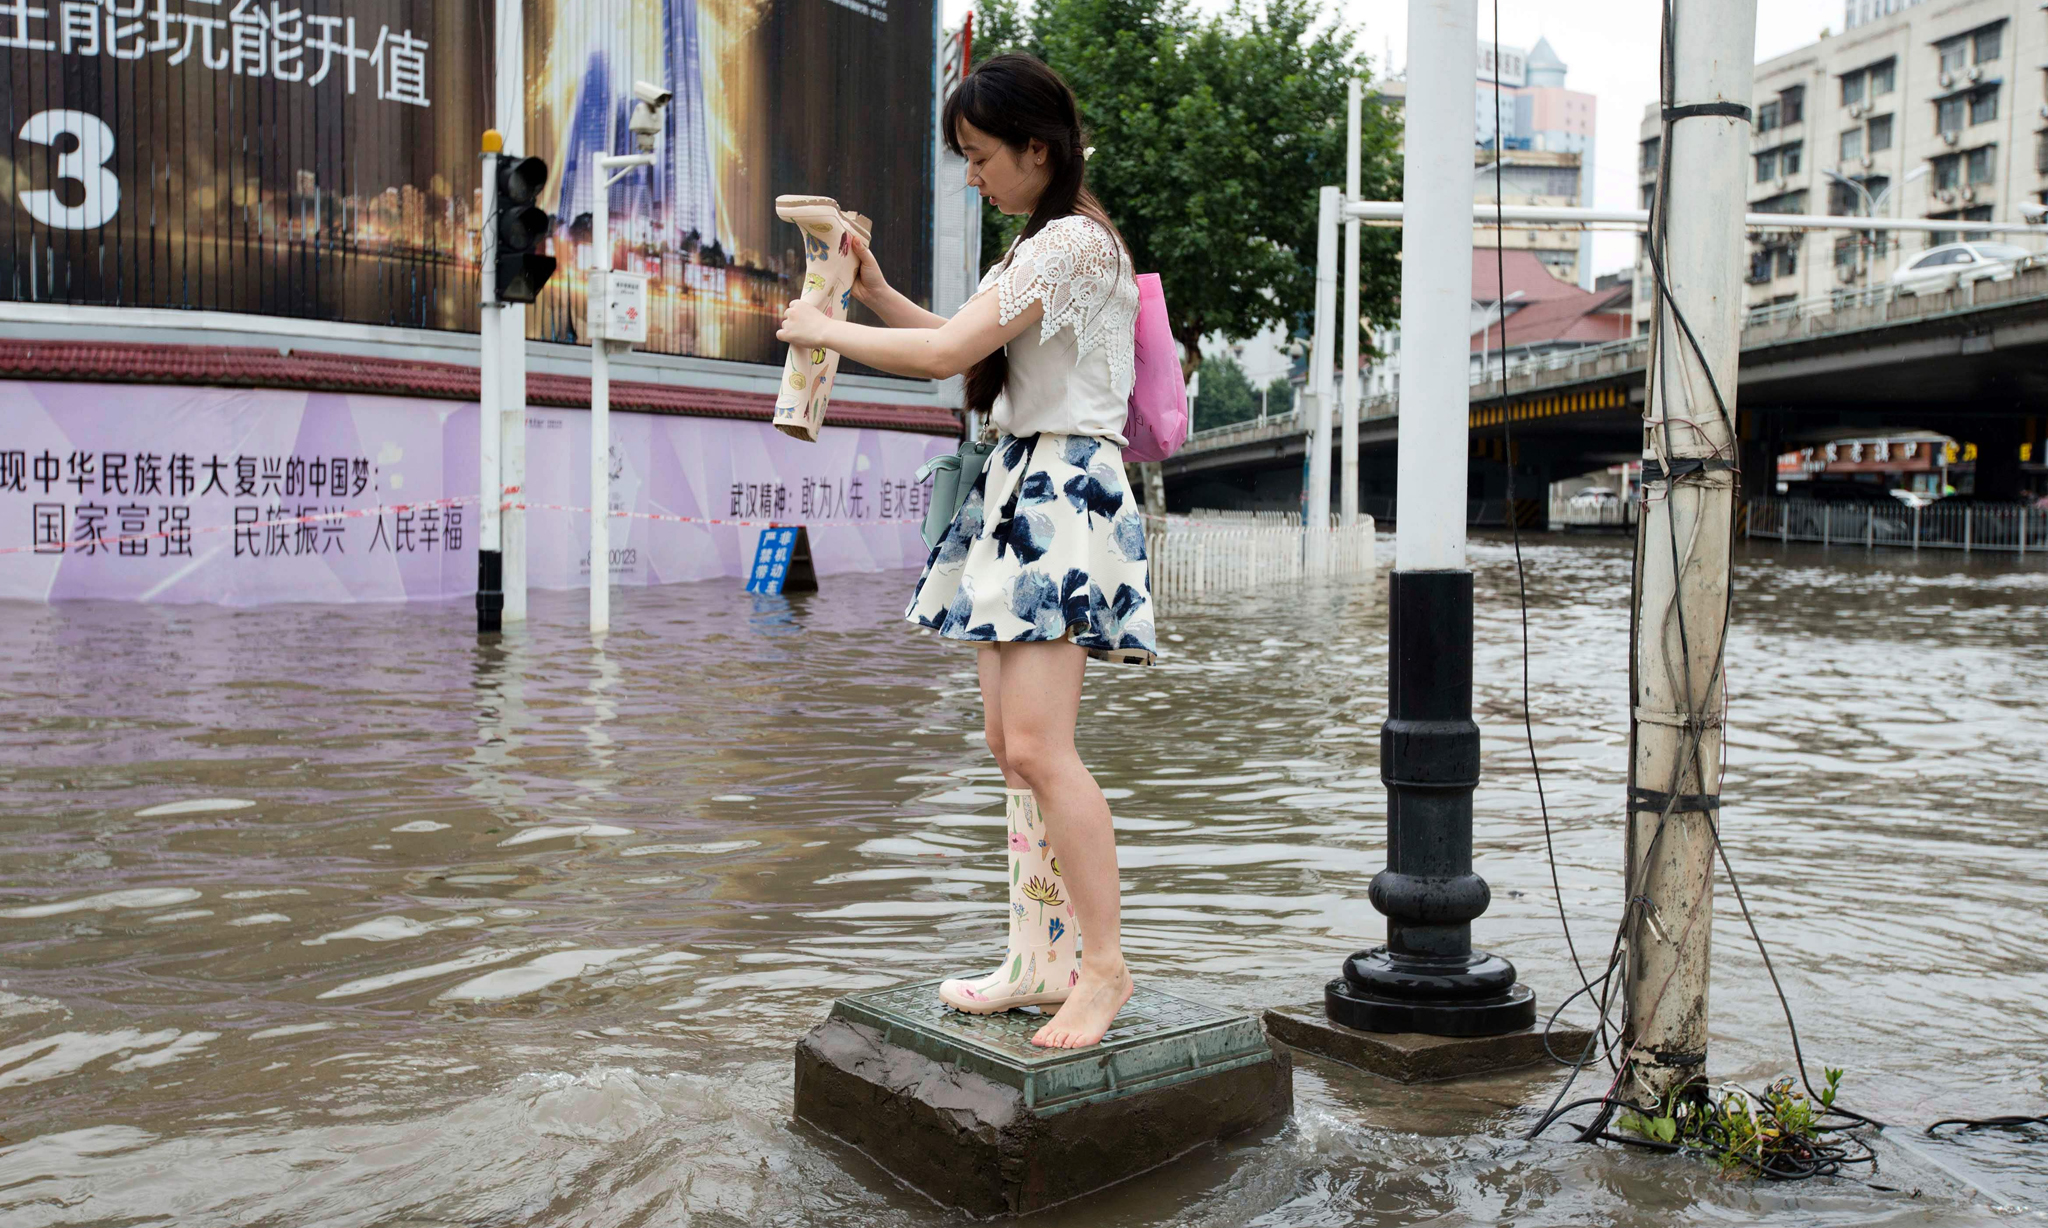 This picture taken on July 6, 2016 shows a woman emptying the water from her boots at a flooded area in Wuhan, central China's Hubei province